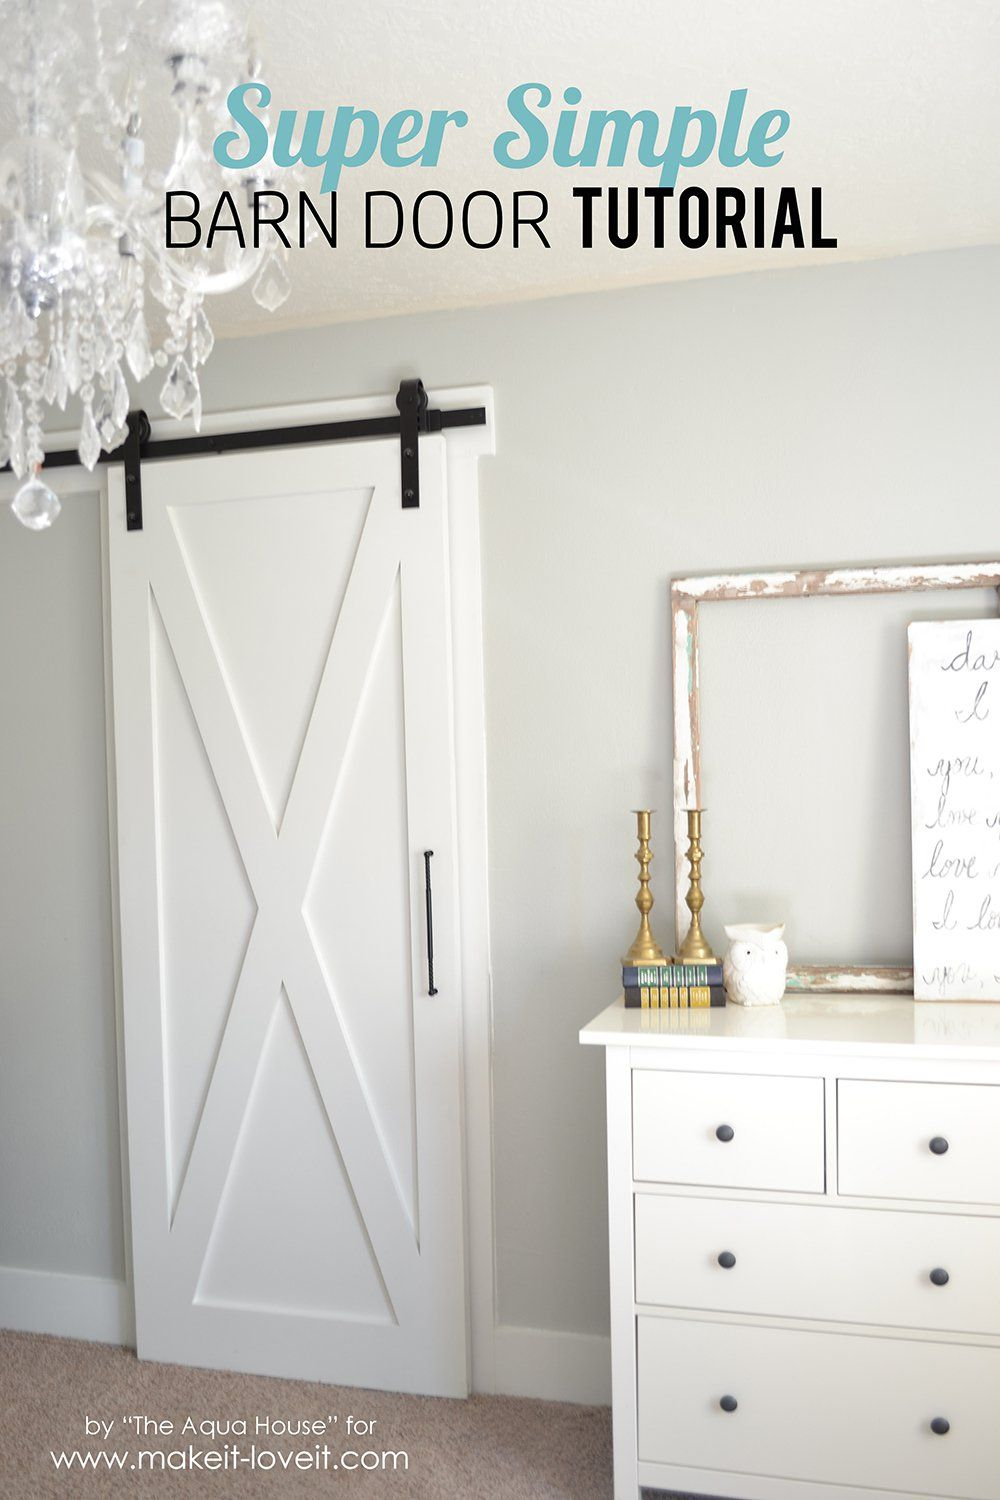 Super Simple Barn Door Tutorial Diy Barn Door Interior Barn Doors Diy Door